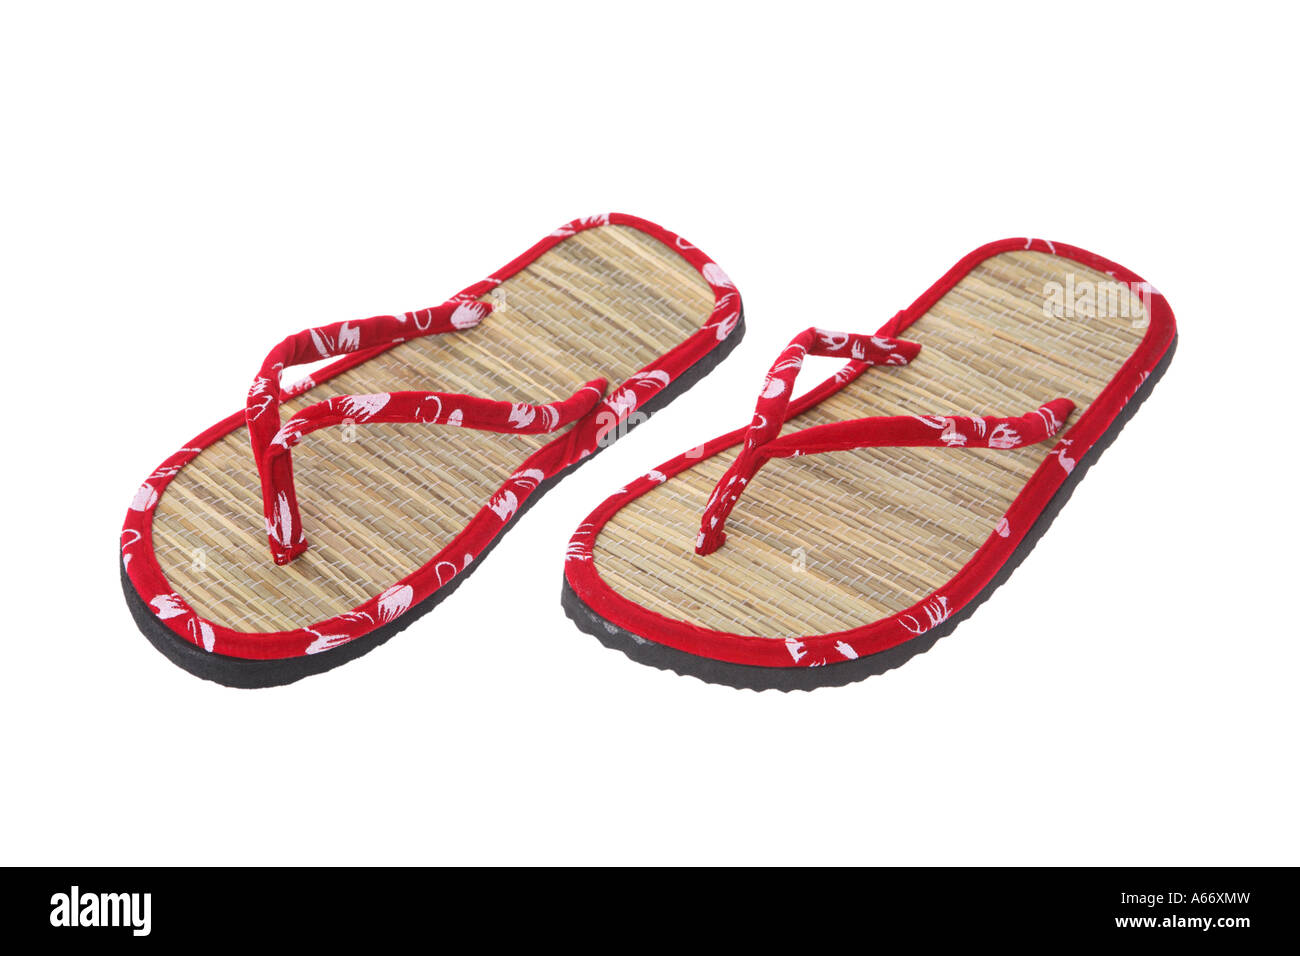 Sandals cut out on white background - Stock Image